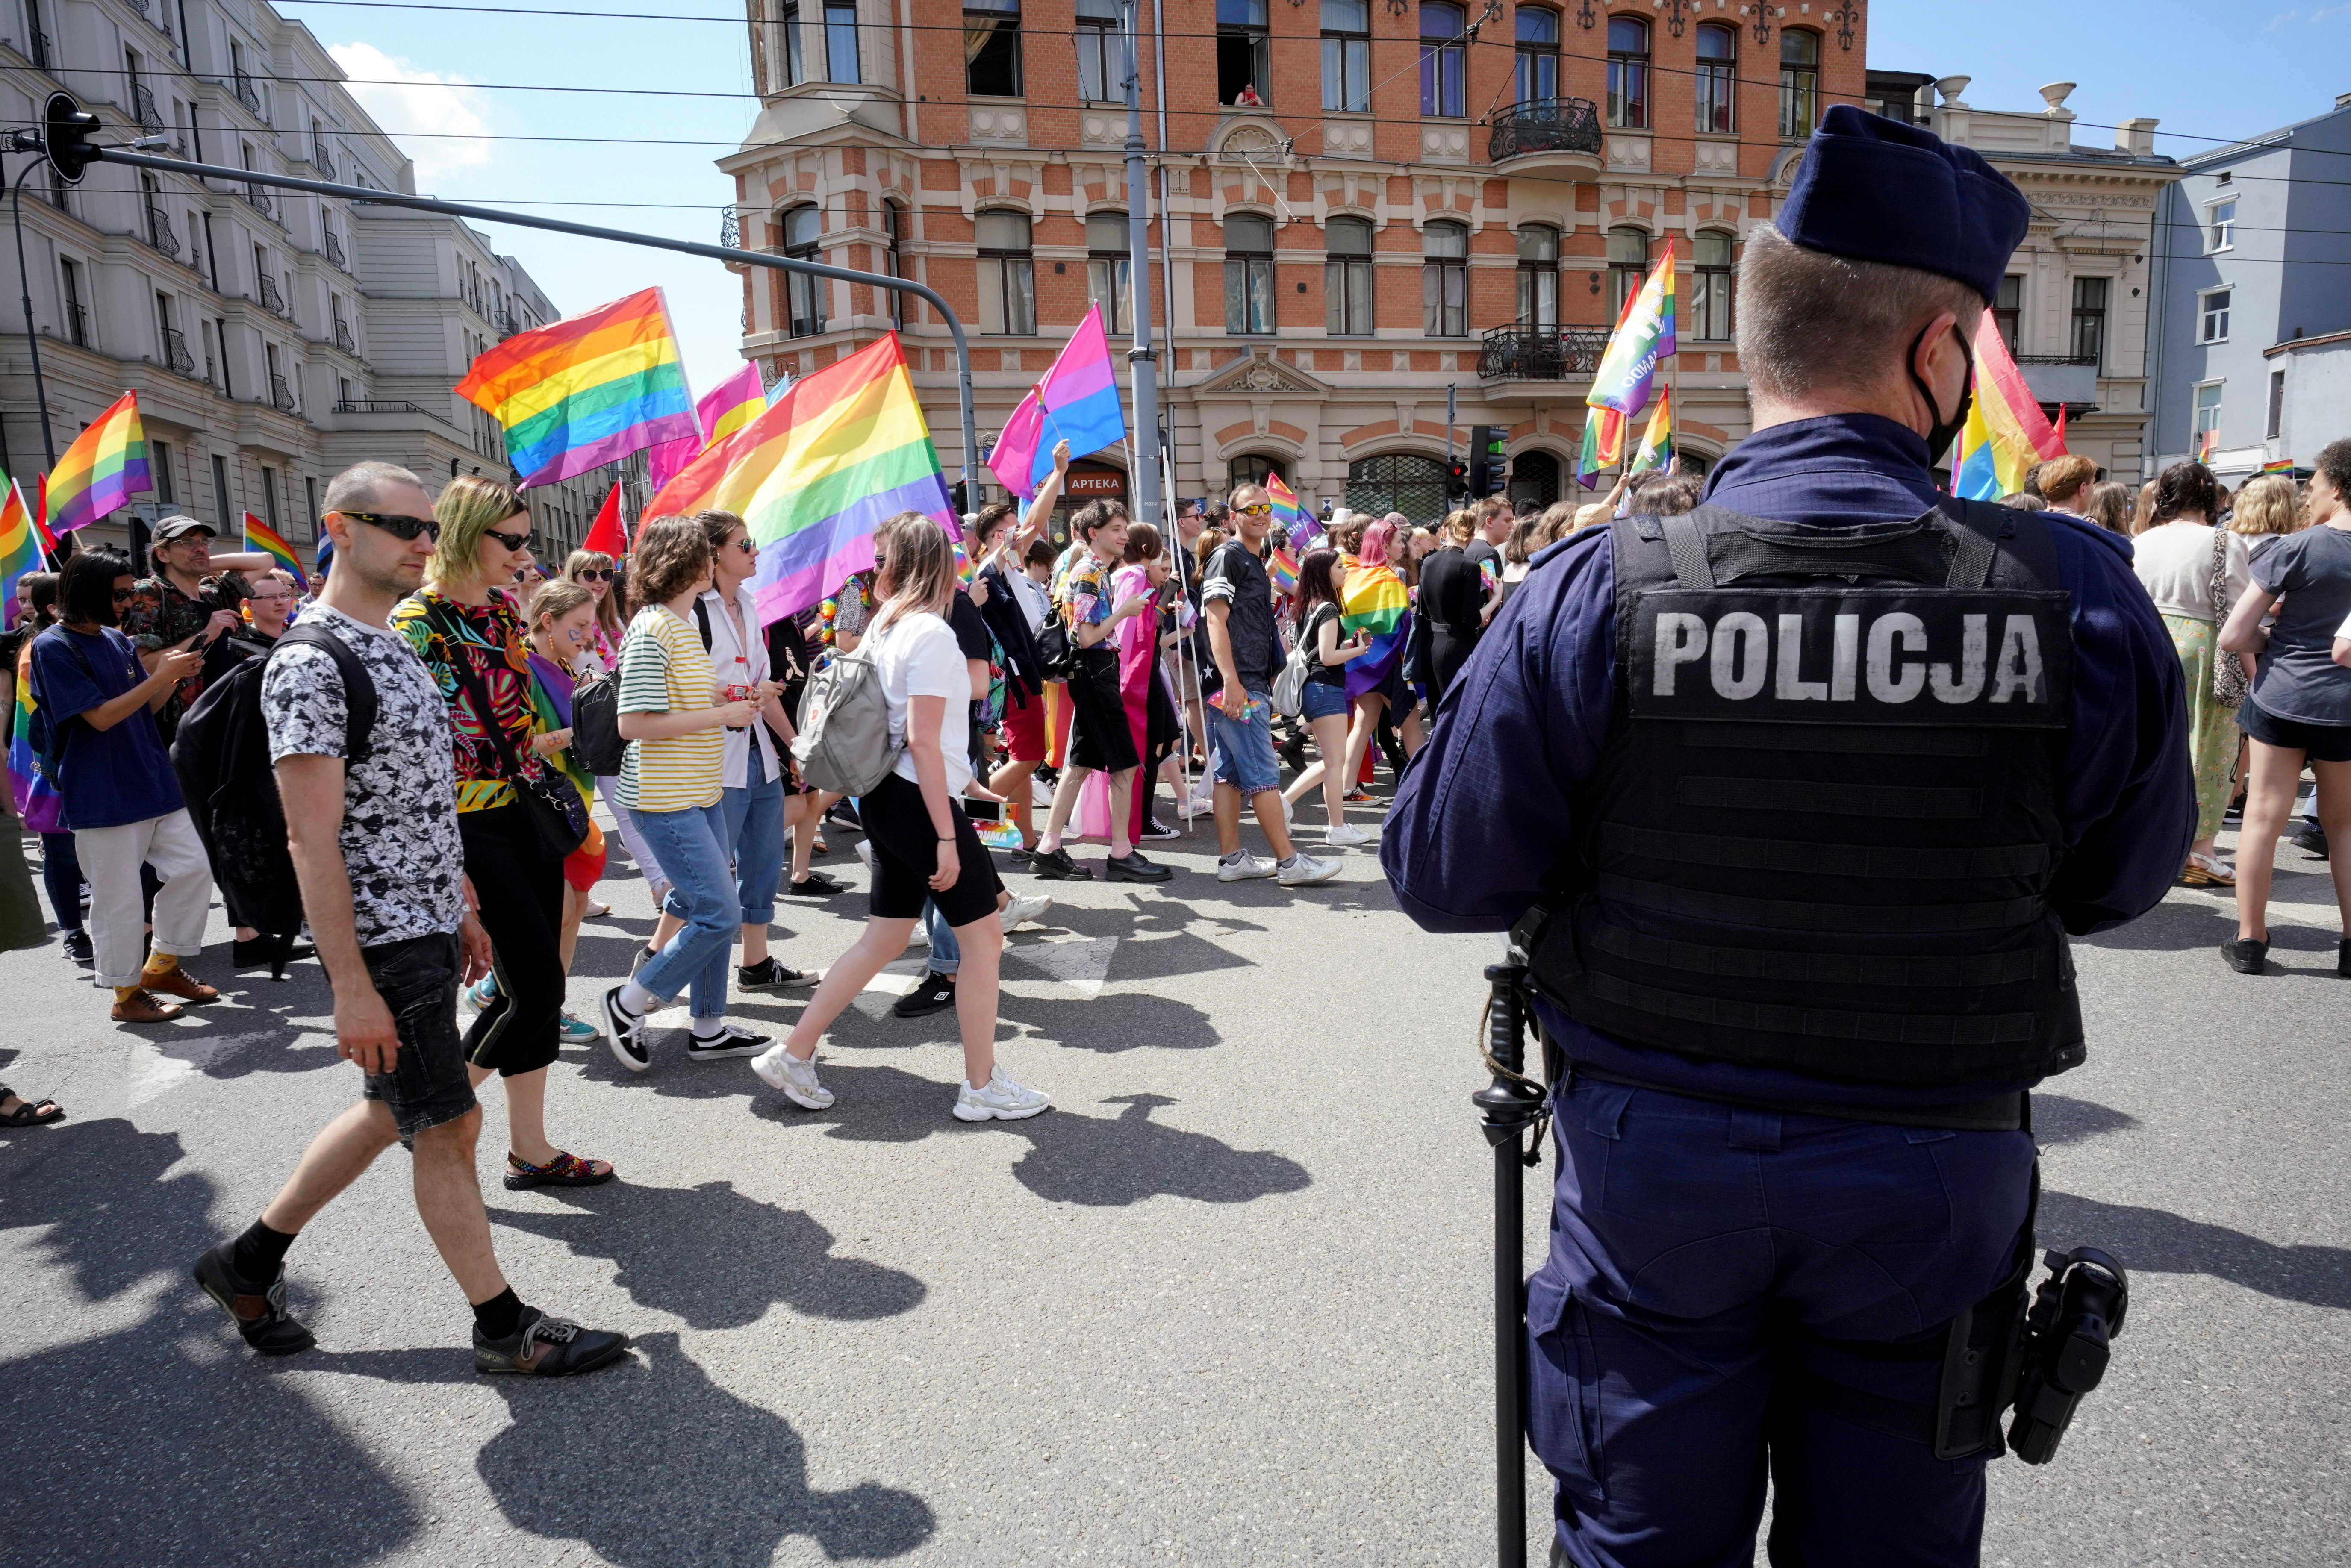 Demonstrators take part in the EqualityMarchin support of the LGBT community, in Lodz, Poland June 26, 2021. Marcin Stepien/Agencja Gazeta via REUTERS